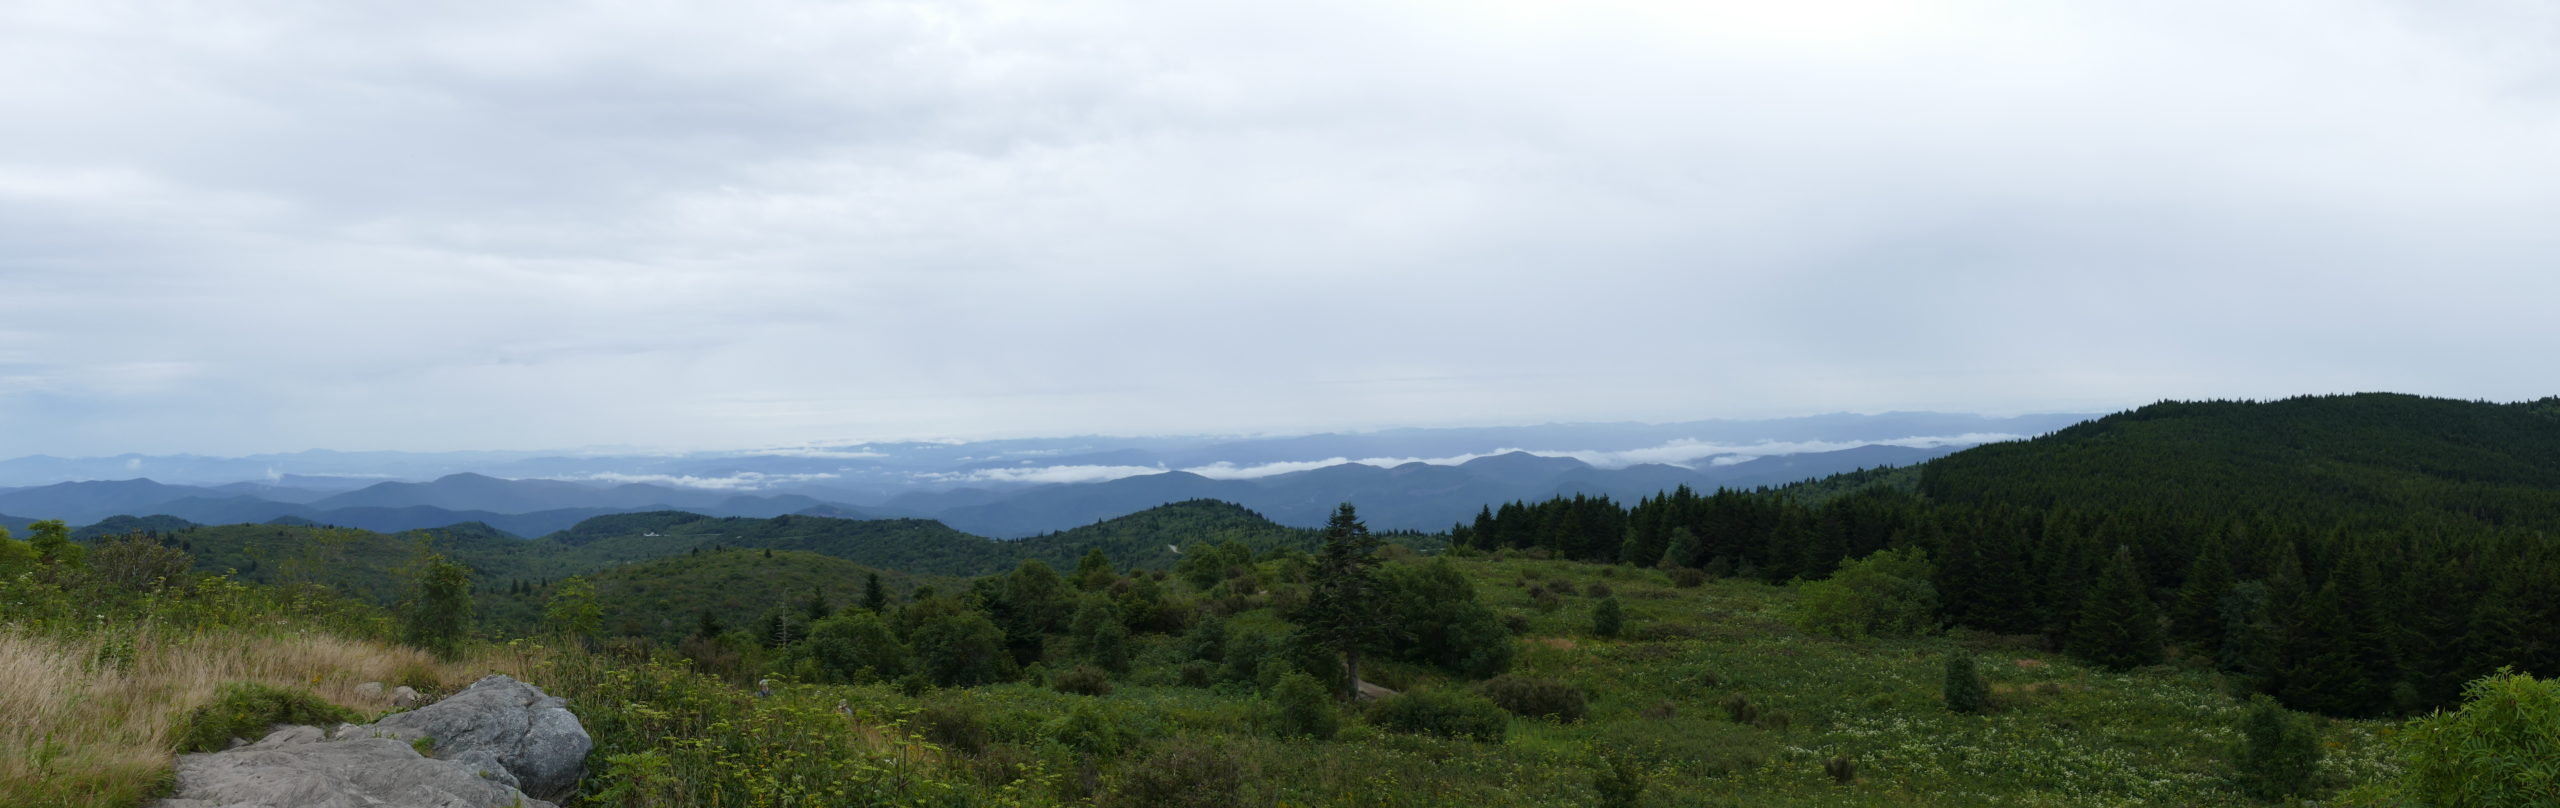 View of Blue Ridge Mountains In teh Distance from Black Balsm Viewpoint